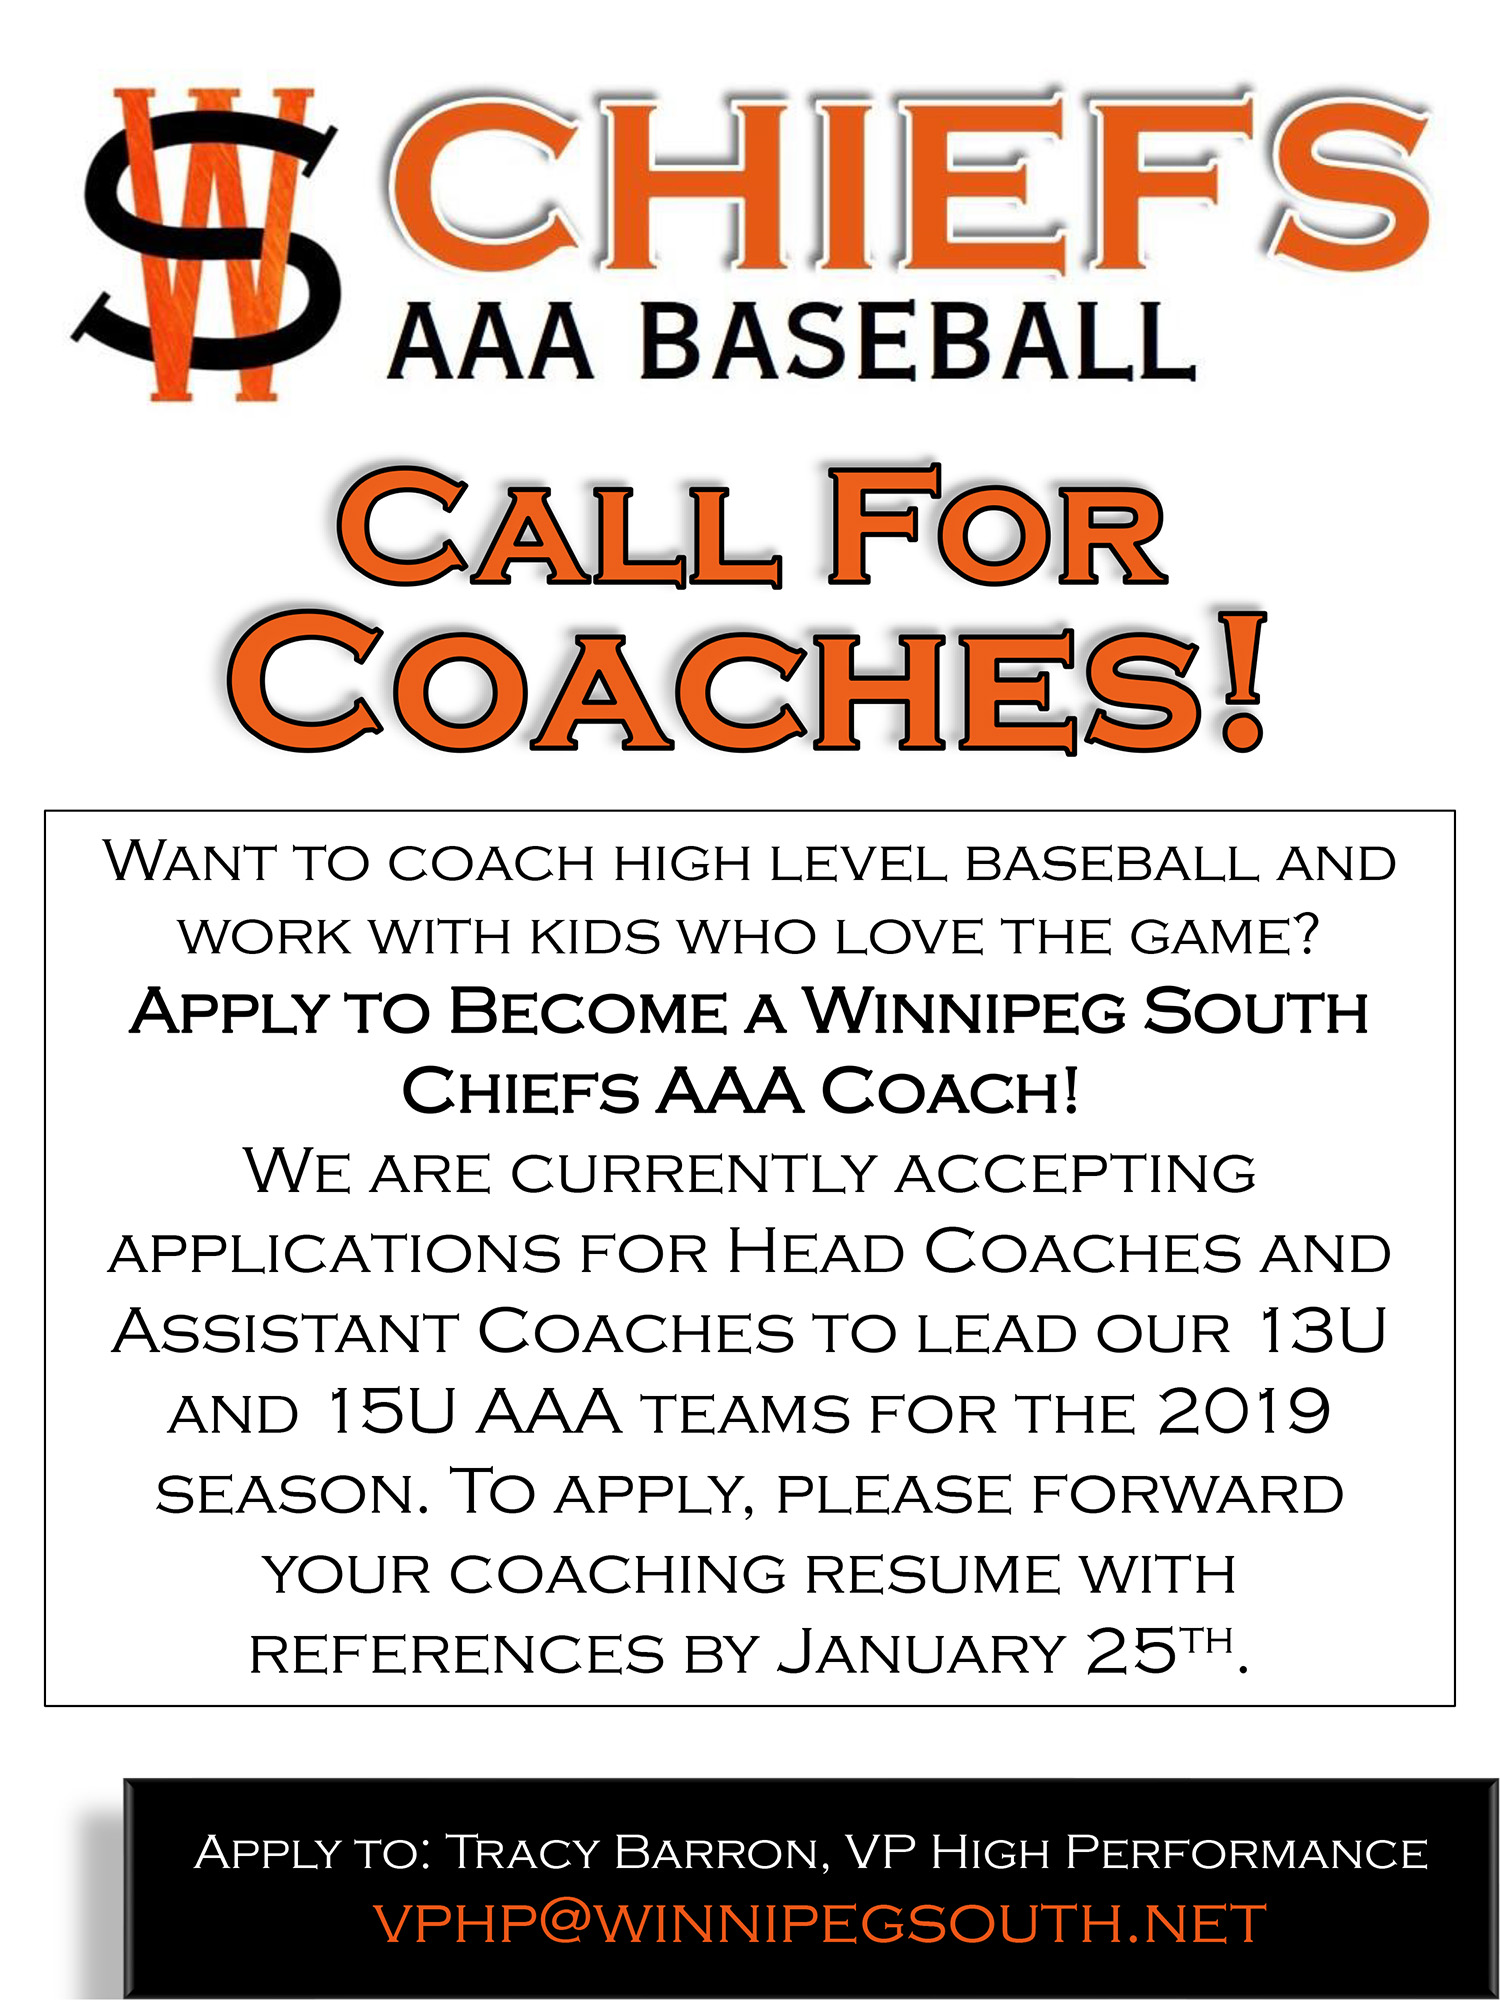 WS call for coaches poster 2019smaller.jpg